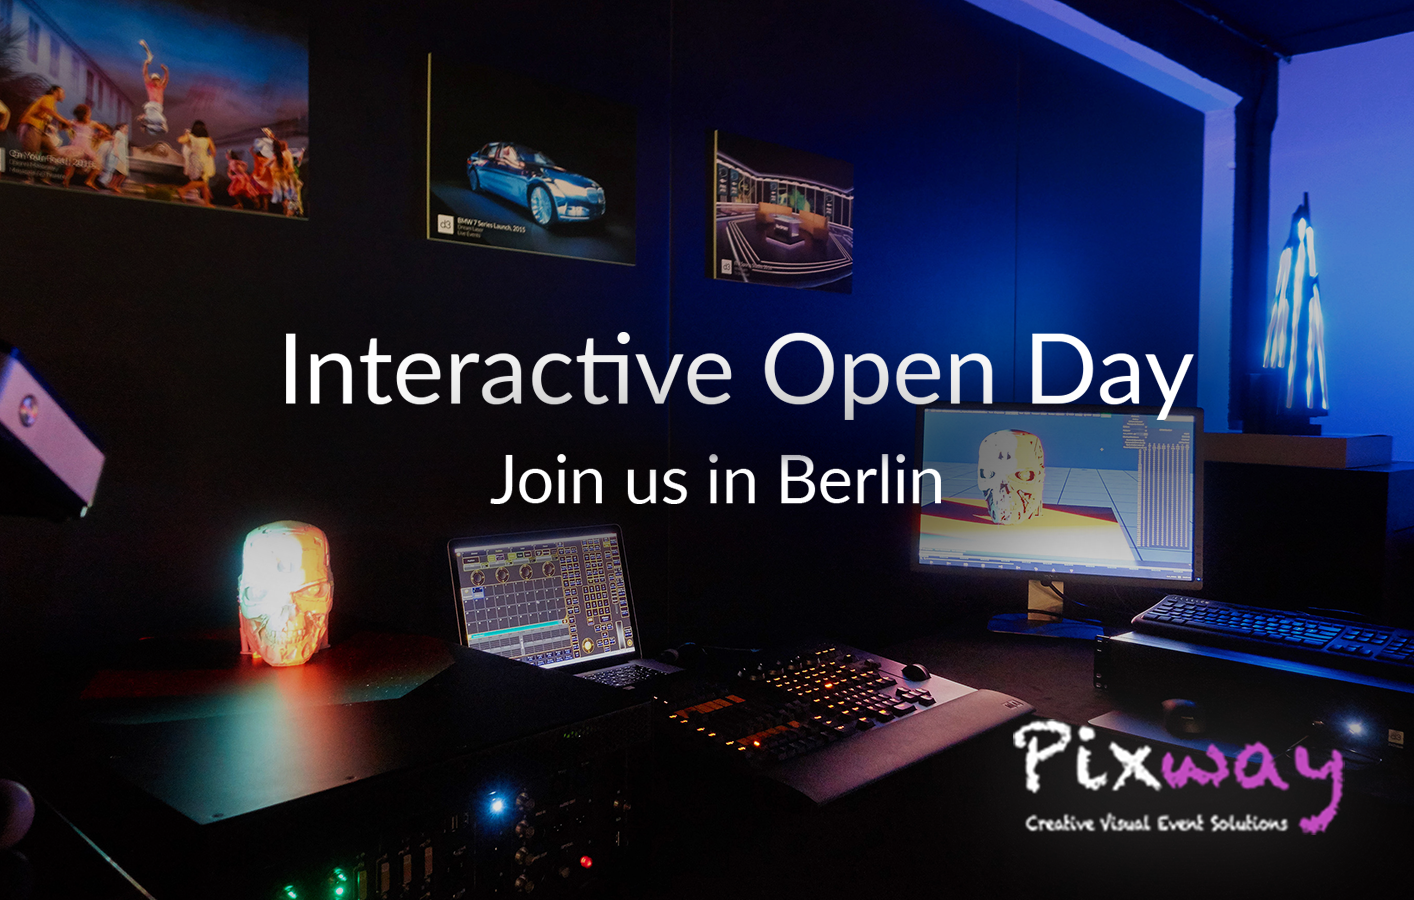 Pixway and disguise - Interactive Open Day in Berlin